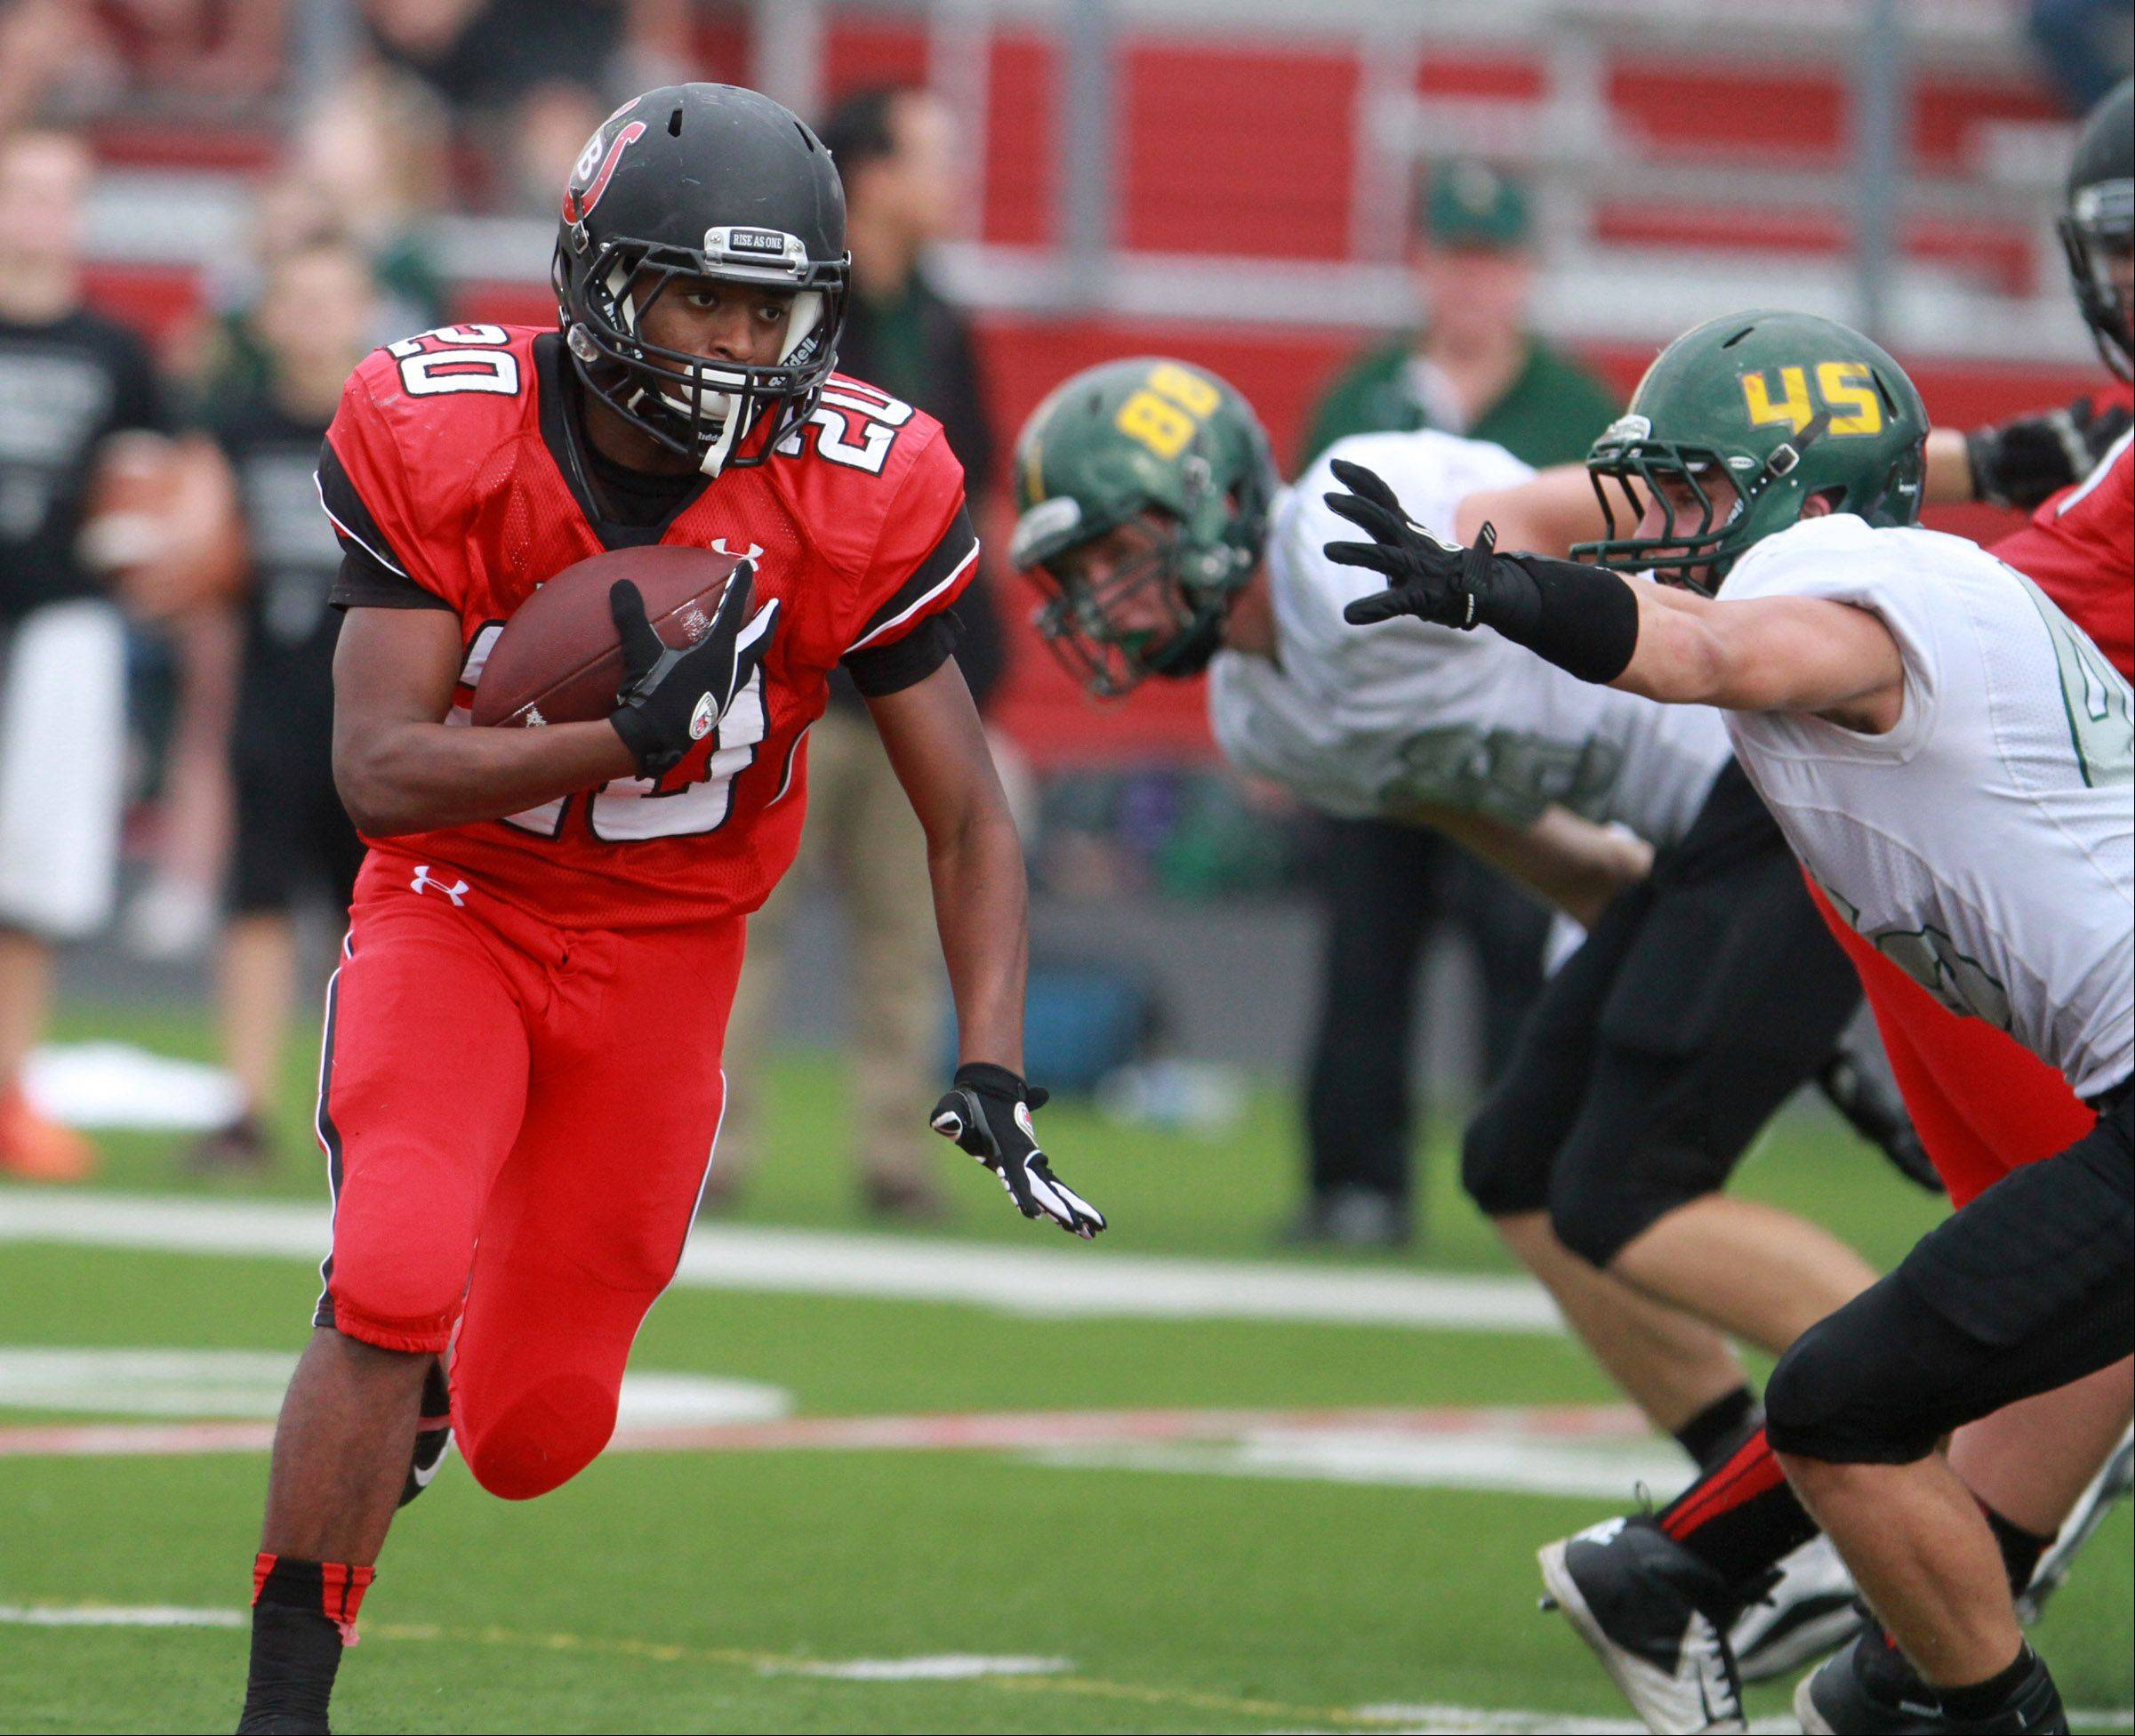 Barrington wide-receiver Jeff Gill runs around two Fremd defenders at Barrington on Saturday,October 5.